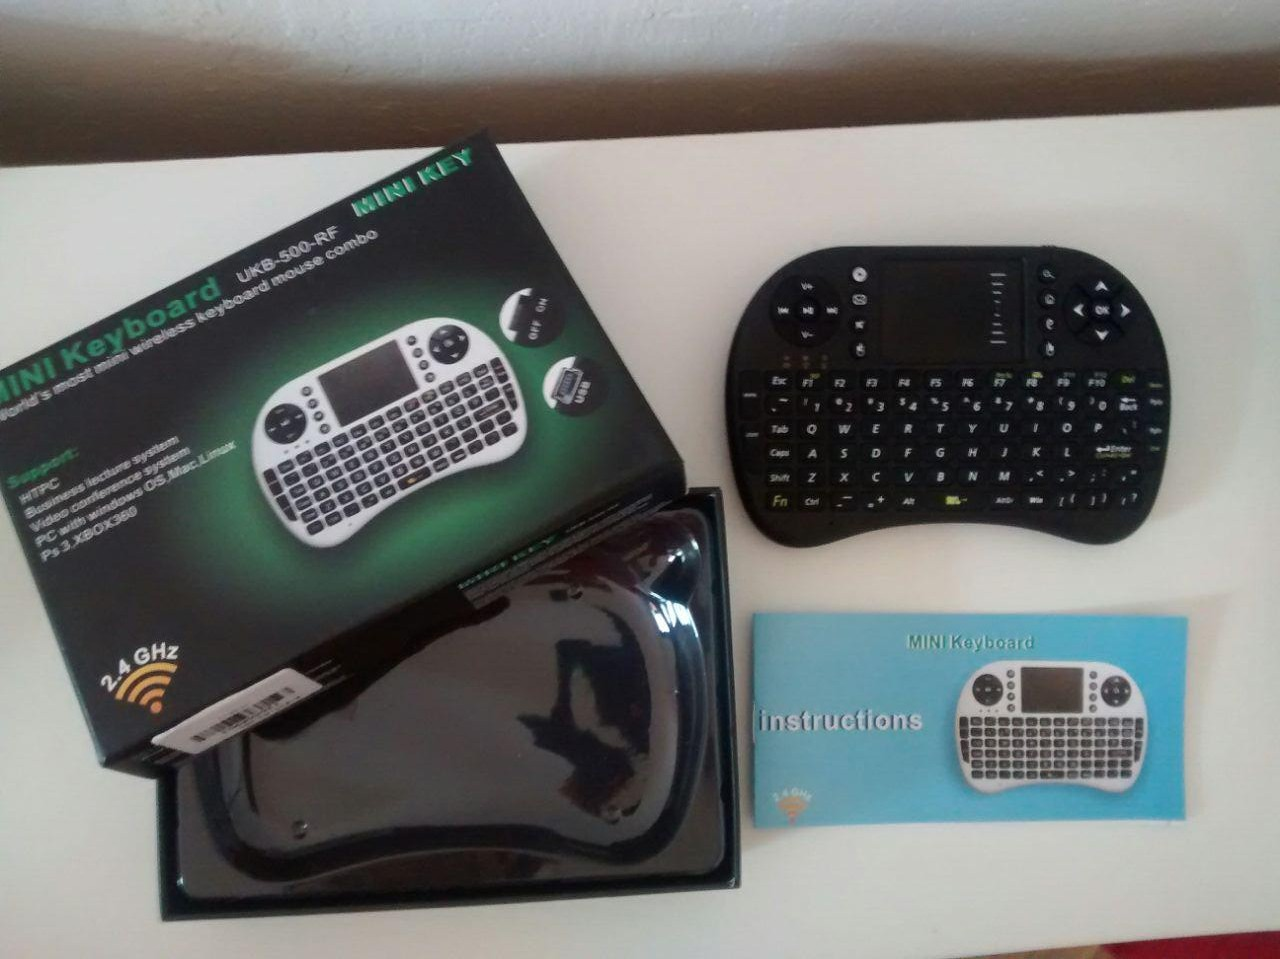 Recensione TV Box Beelink M808 e Mini Keyboard I8